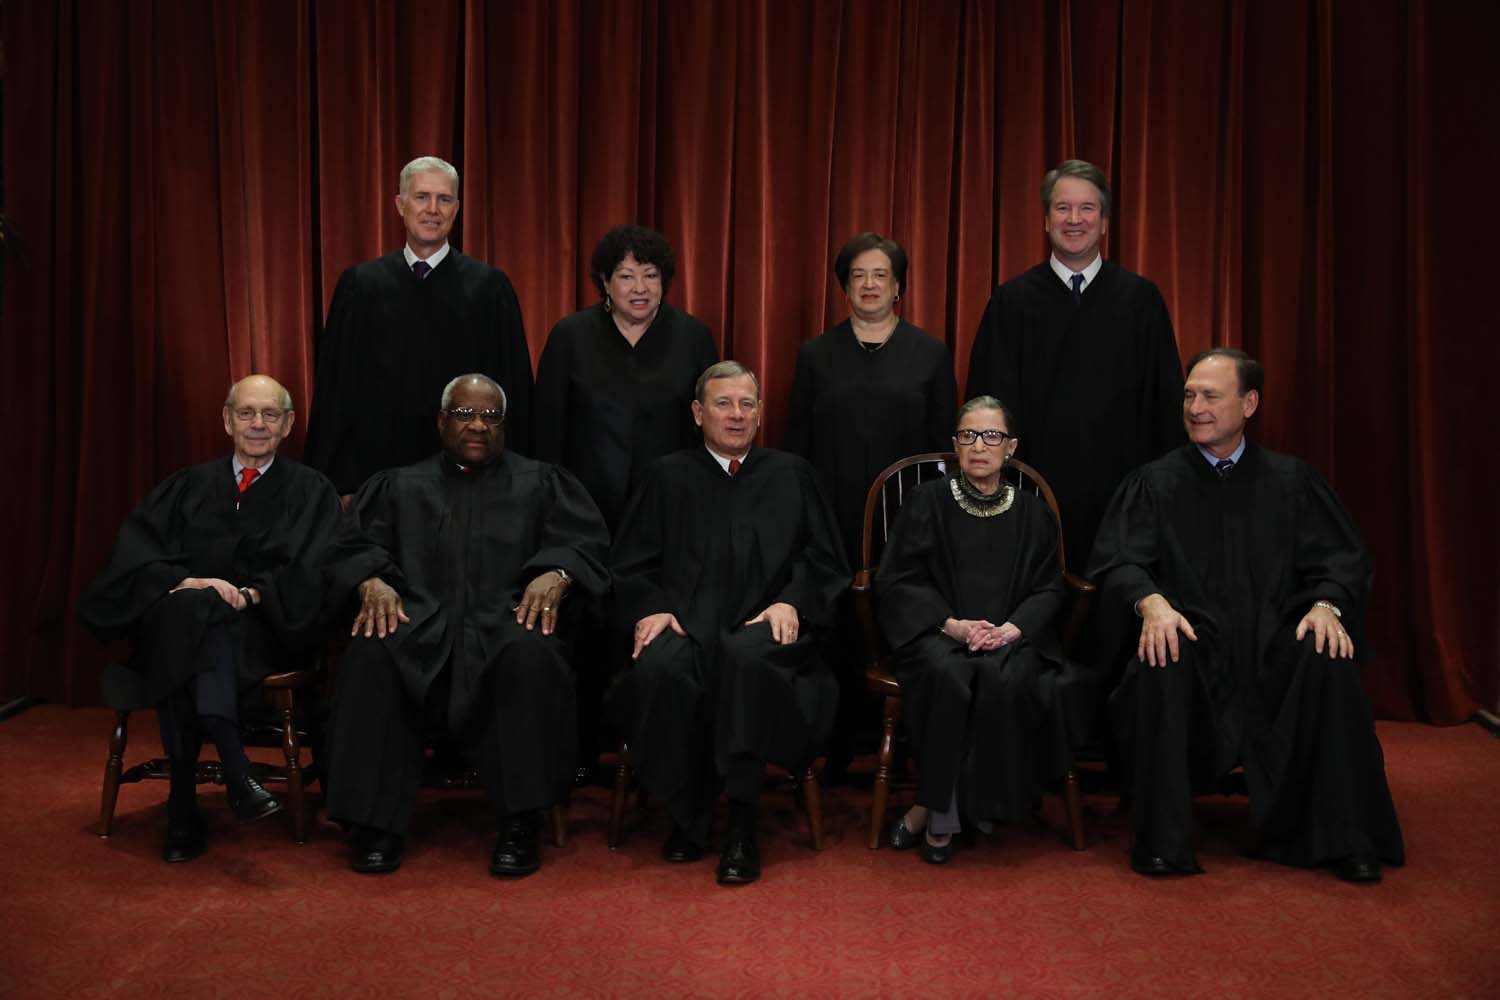 The Supreme Court opened its new term on Monday facing decisions on the Dreamers, LGBTQ+ rights, religion and abortion.